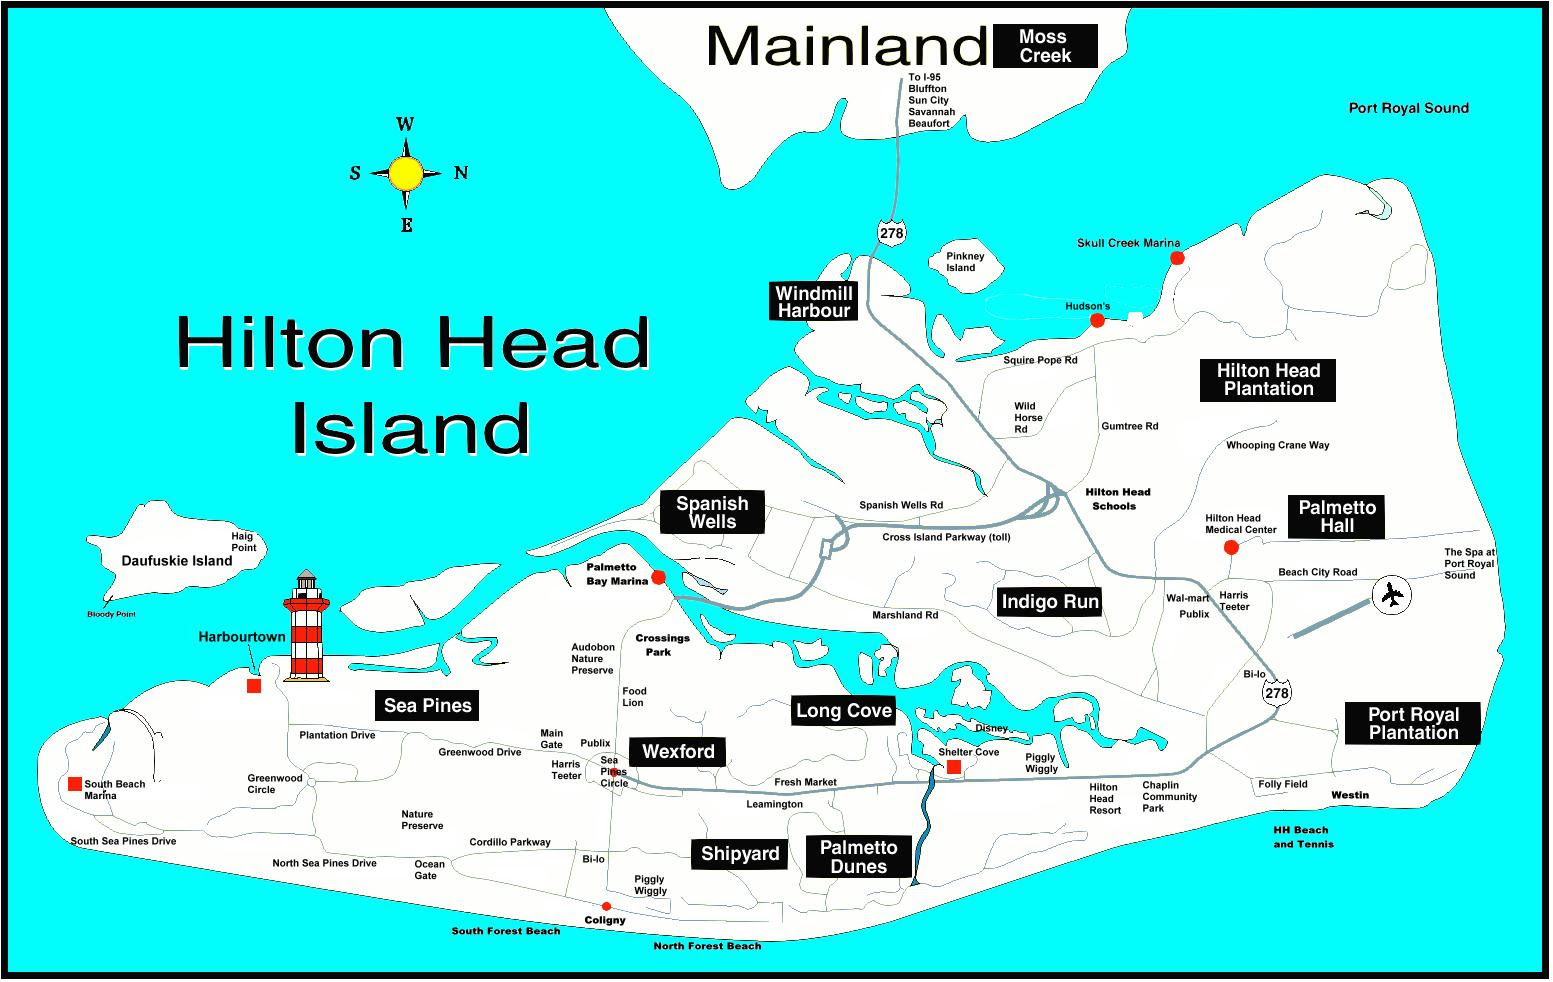 Map Of Hilton Head Island Printable Map Of Hilton Head Island Golf on printable map of provincetown, printable map of laguna beach, printable map of charlotte, printable map of breckenridge lodging, printable map of nantucket, printable map of martha's vineyard, printable map of greensboro, printable map of greenville, printable map of lake hartwell, printable map of north, printable map of santa barbara, printable map of ketchikan, printable map of murrells inlet, printable map of palm beach, printable map of great falls, printable map of boca grande, printable map of asheville, printable map of easton, printable map of long beach, printable map of springfield,